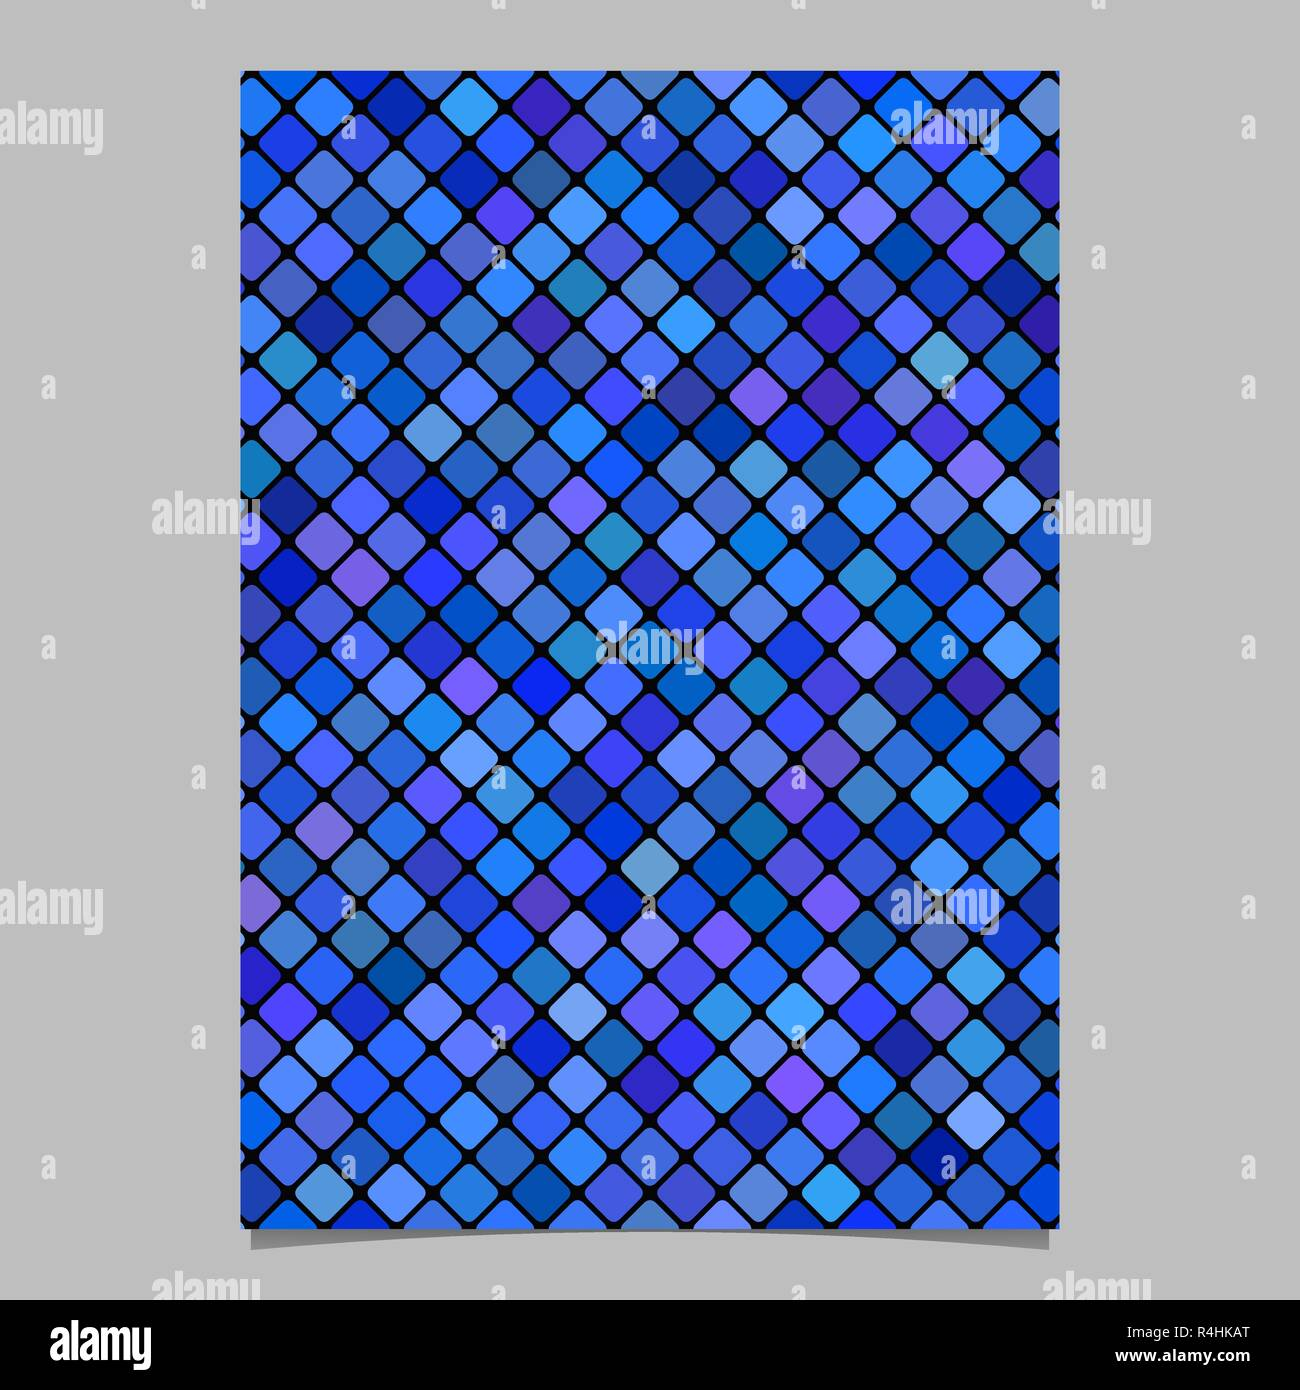 https www alamy com square pattern flyer design vector tile mosaic page background image226581792 html